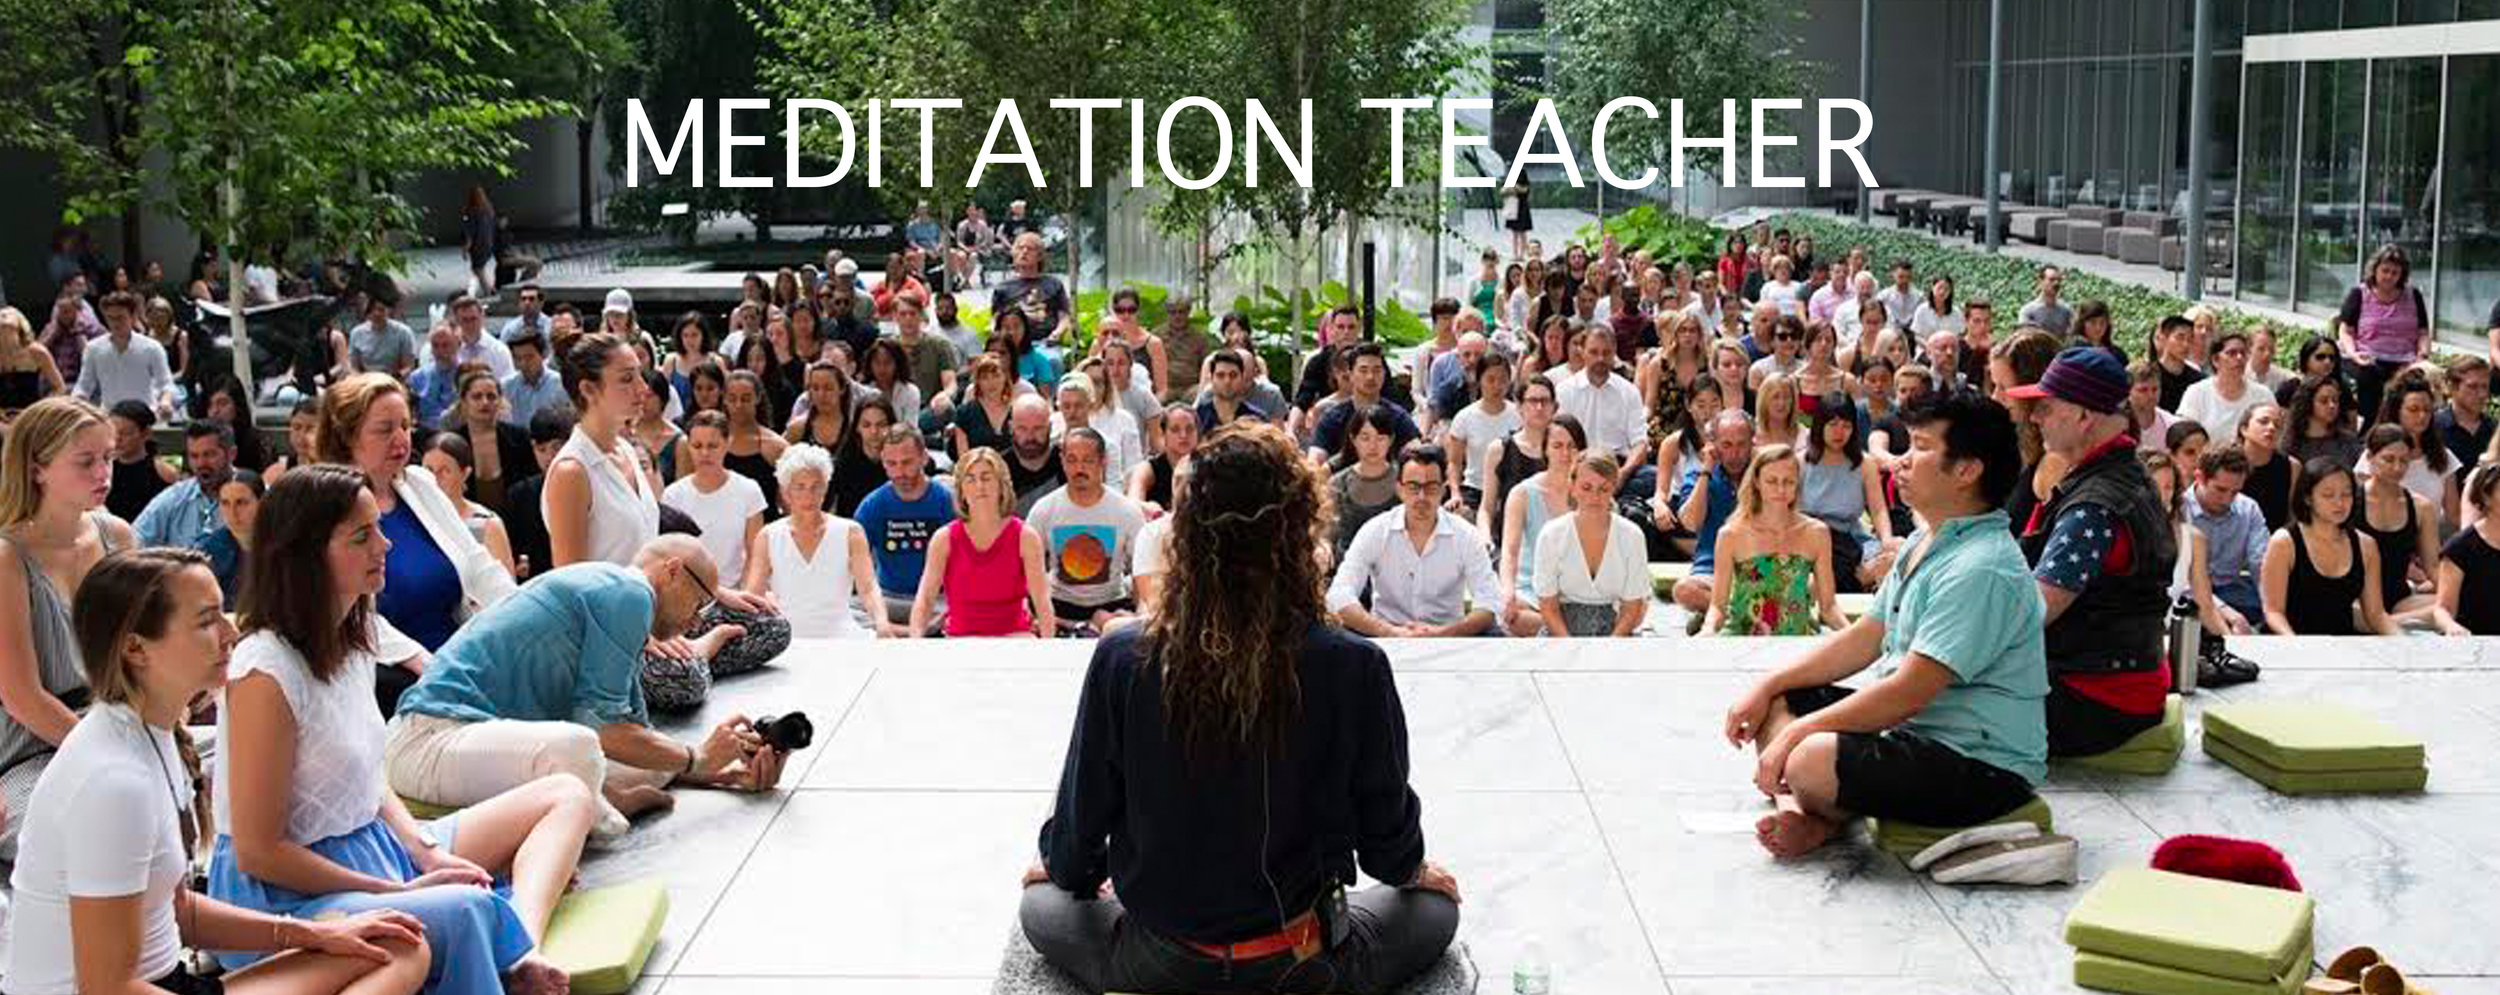 MEDITATION TEACHER.jpg